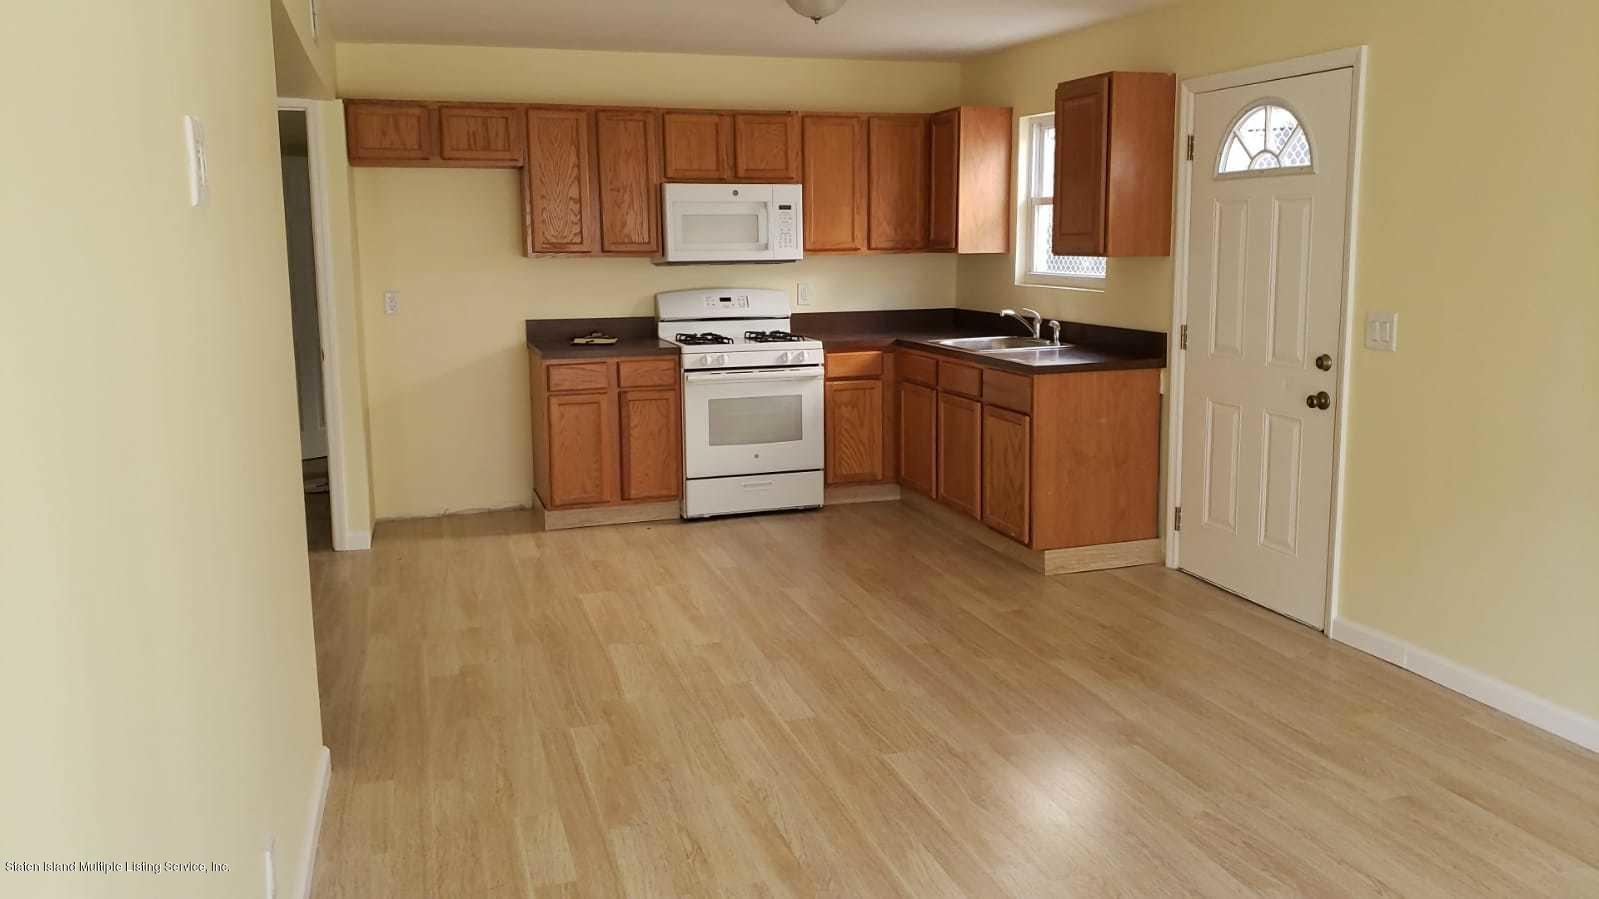 Single Family - Semi-Attached 505 Foster Road  Staten Island, NY 10309, MLS-1124398-16